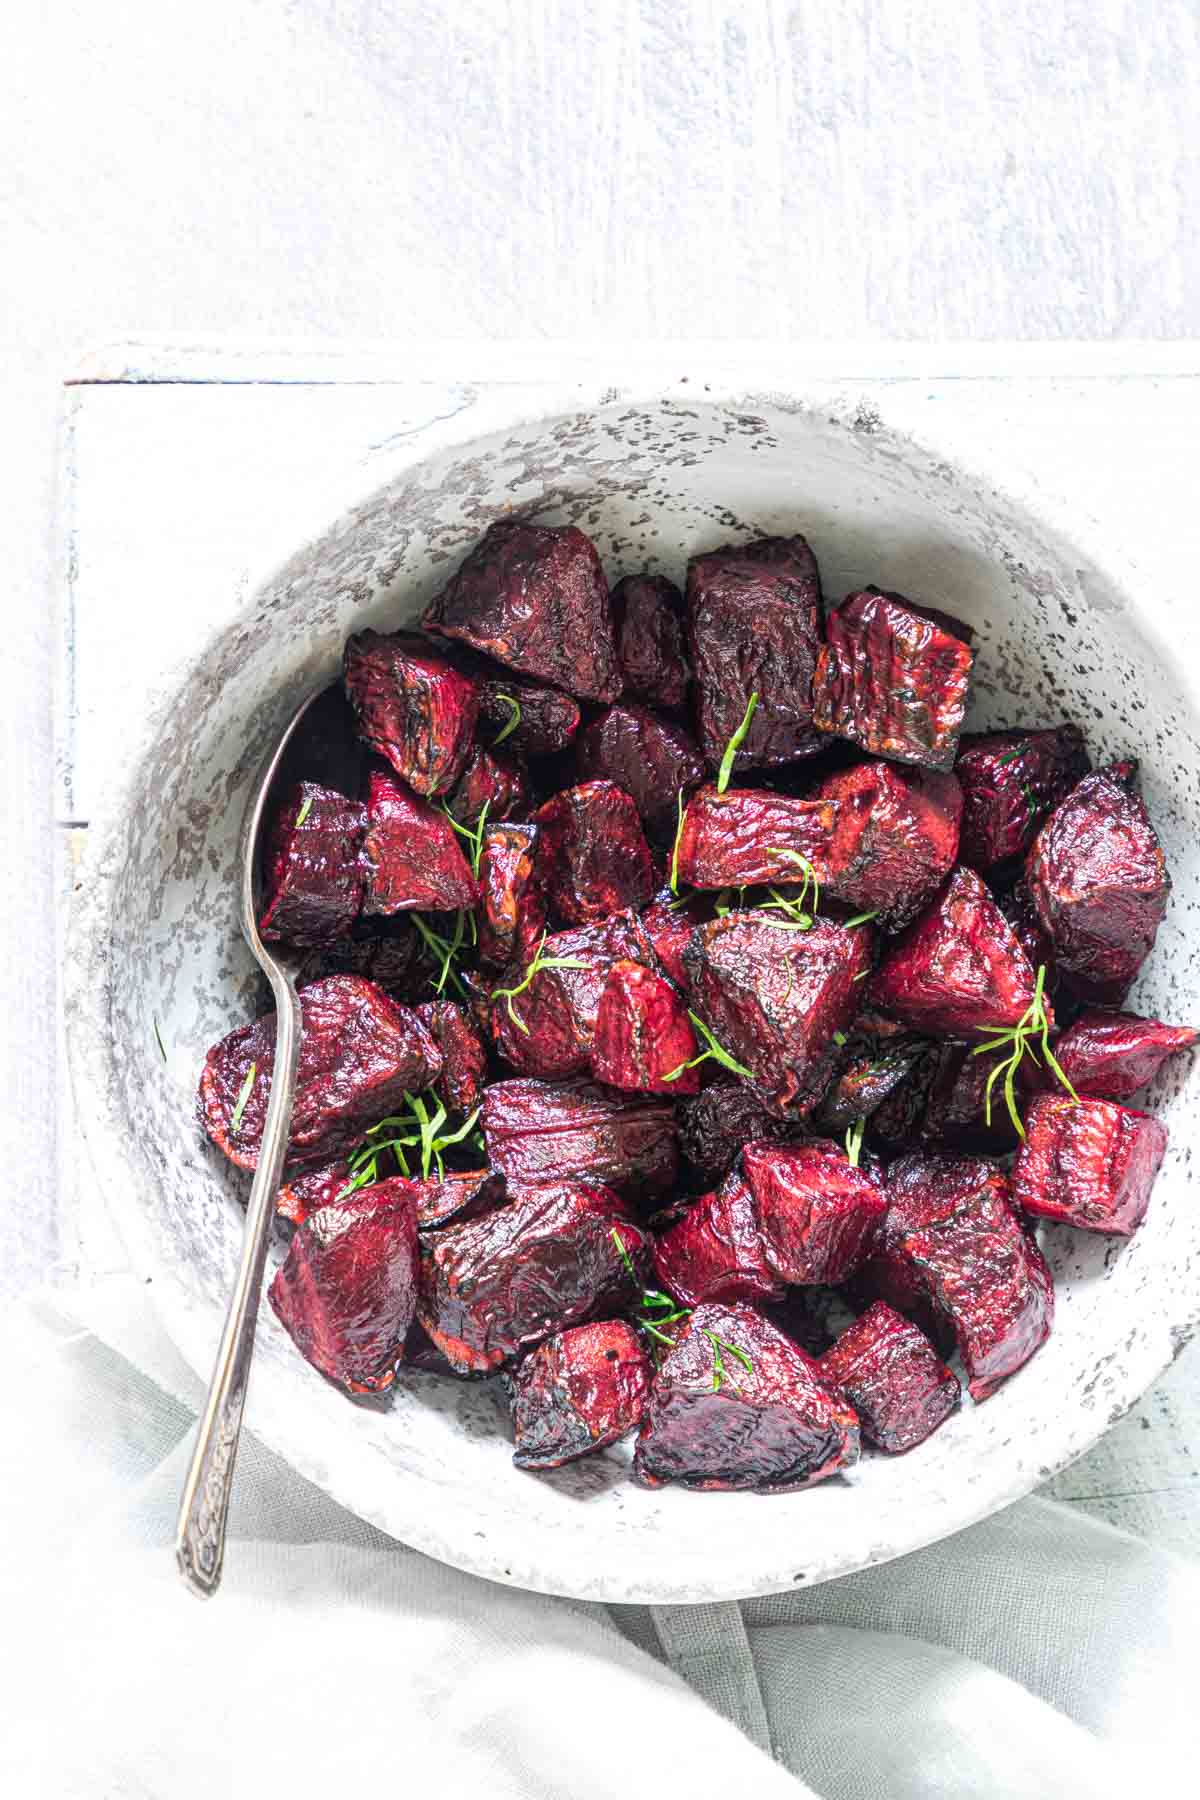 the finished air fryer beets served in a ceramic bowl with silver spoon